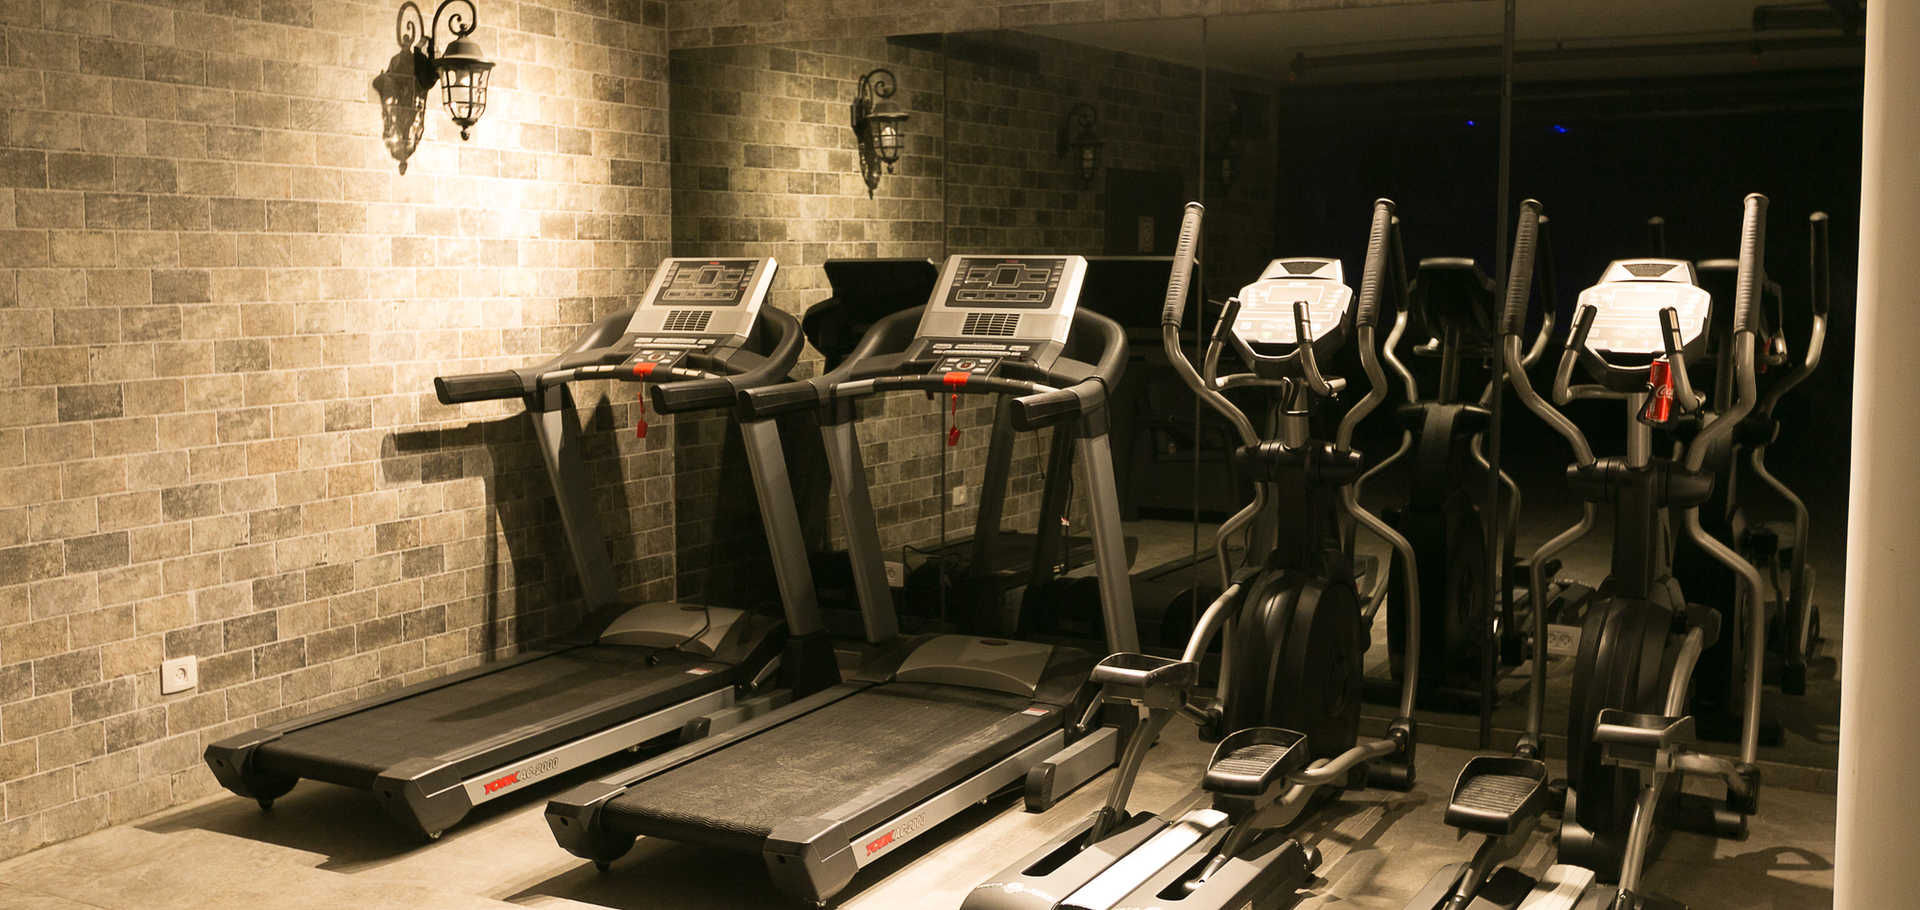 Fitness facilities complex